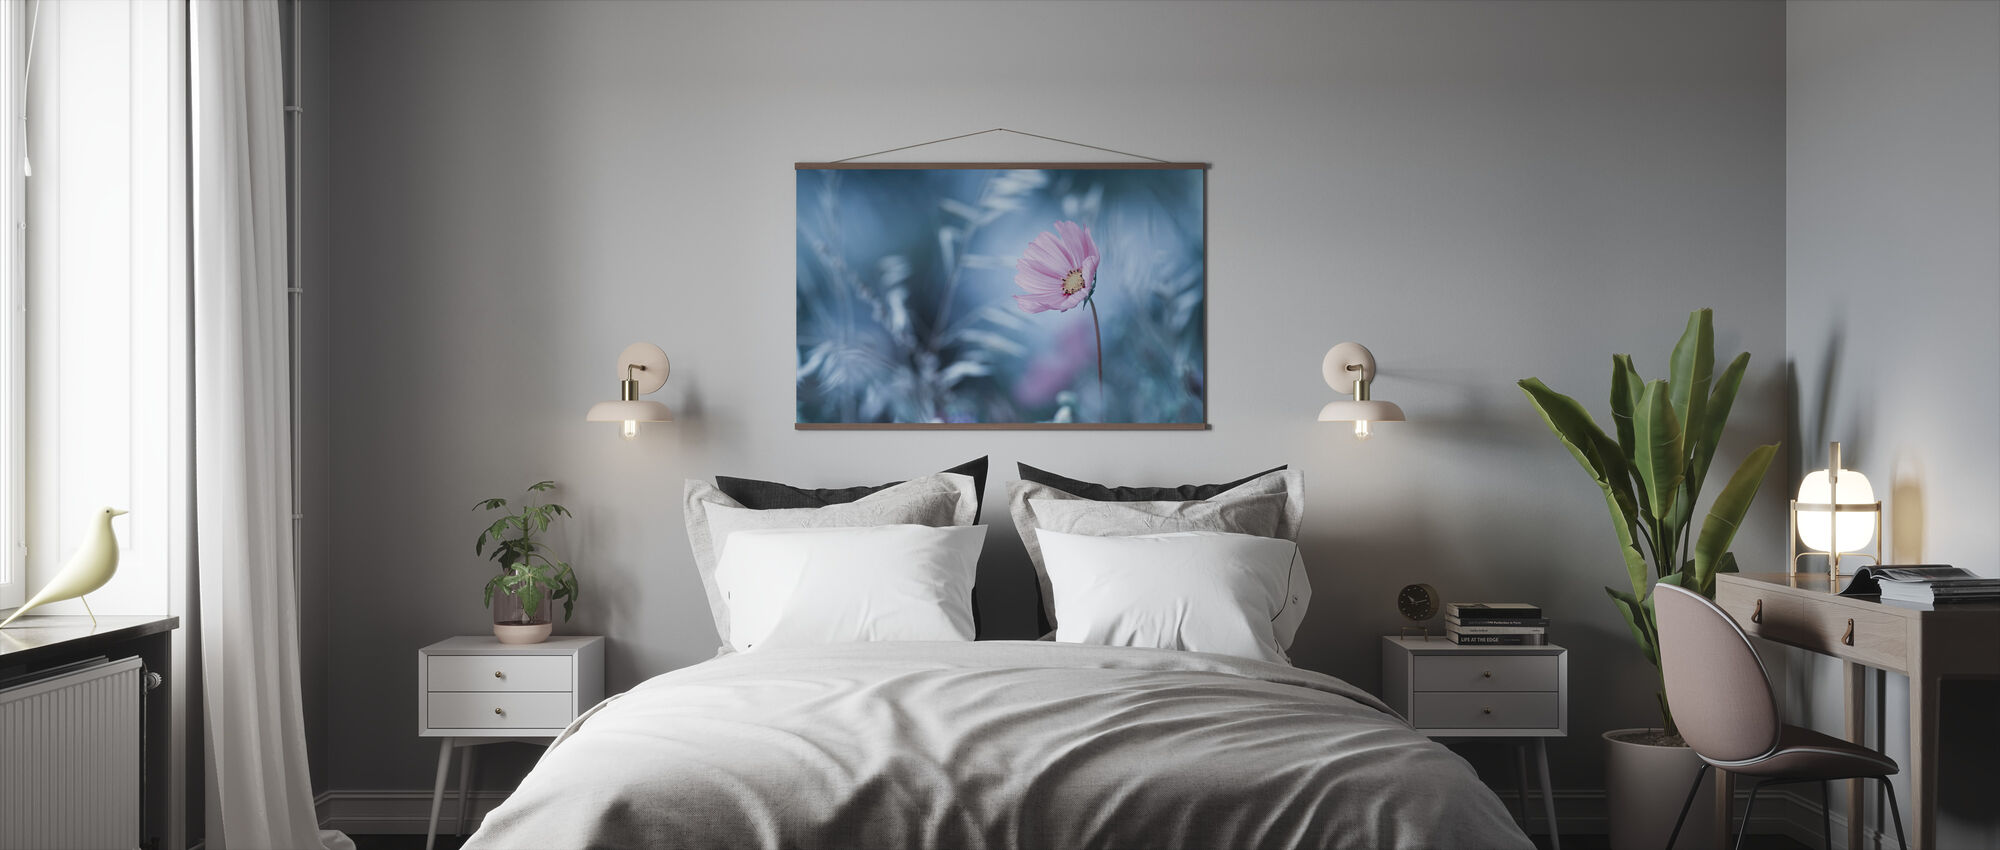 A Walk in Dreamland - Poster - Bedroom